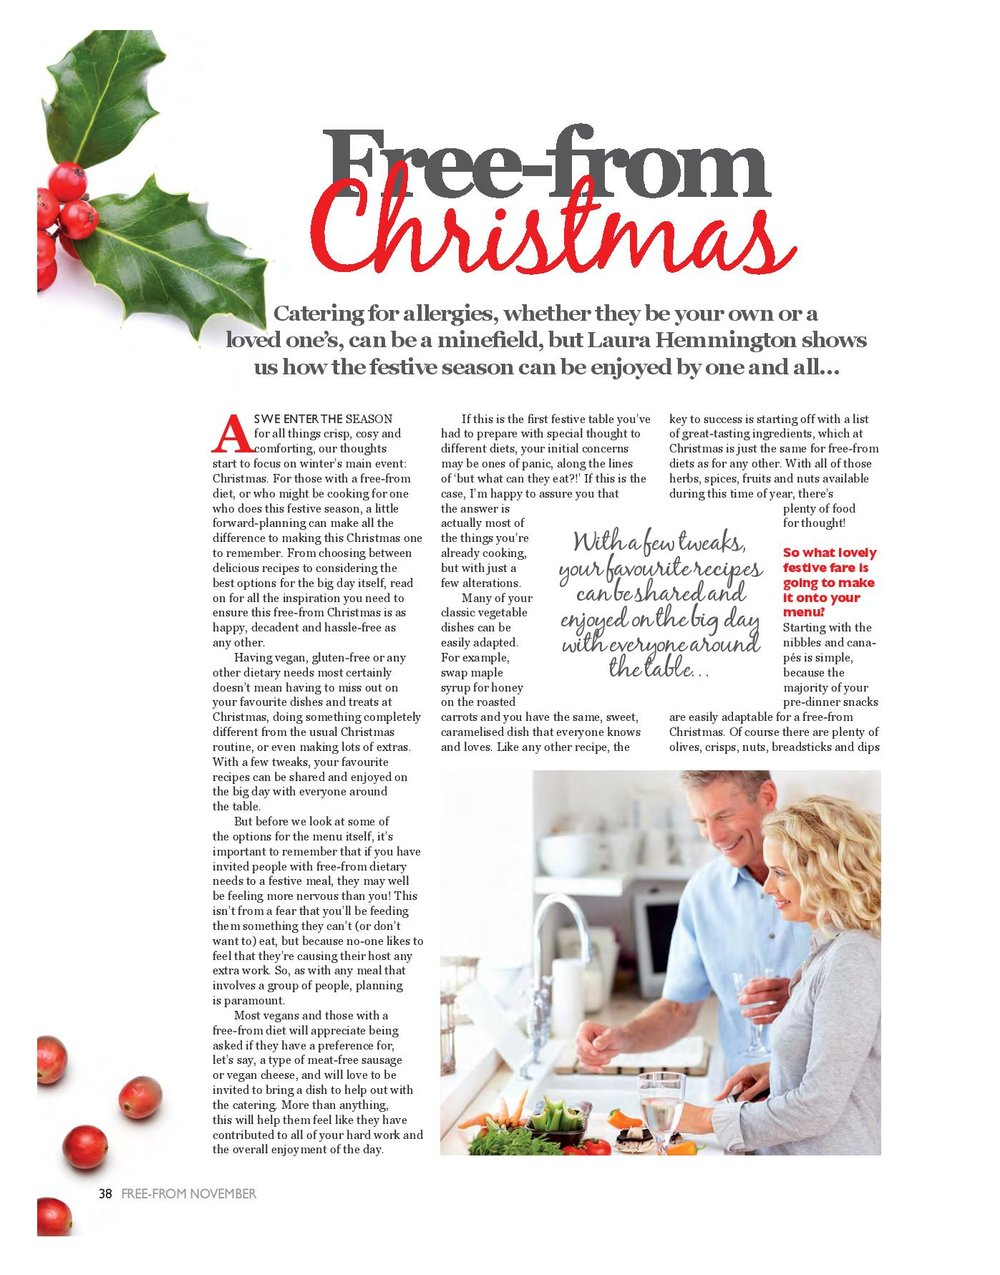 Free-From Magazine. Lifestyle, Print, Digital.   Over the course of a couple of years, I worked with titles in the 'Free-From' magazine group to research and write articles (print and online), and work on food-related content to seasonal briefs.